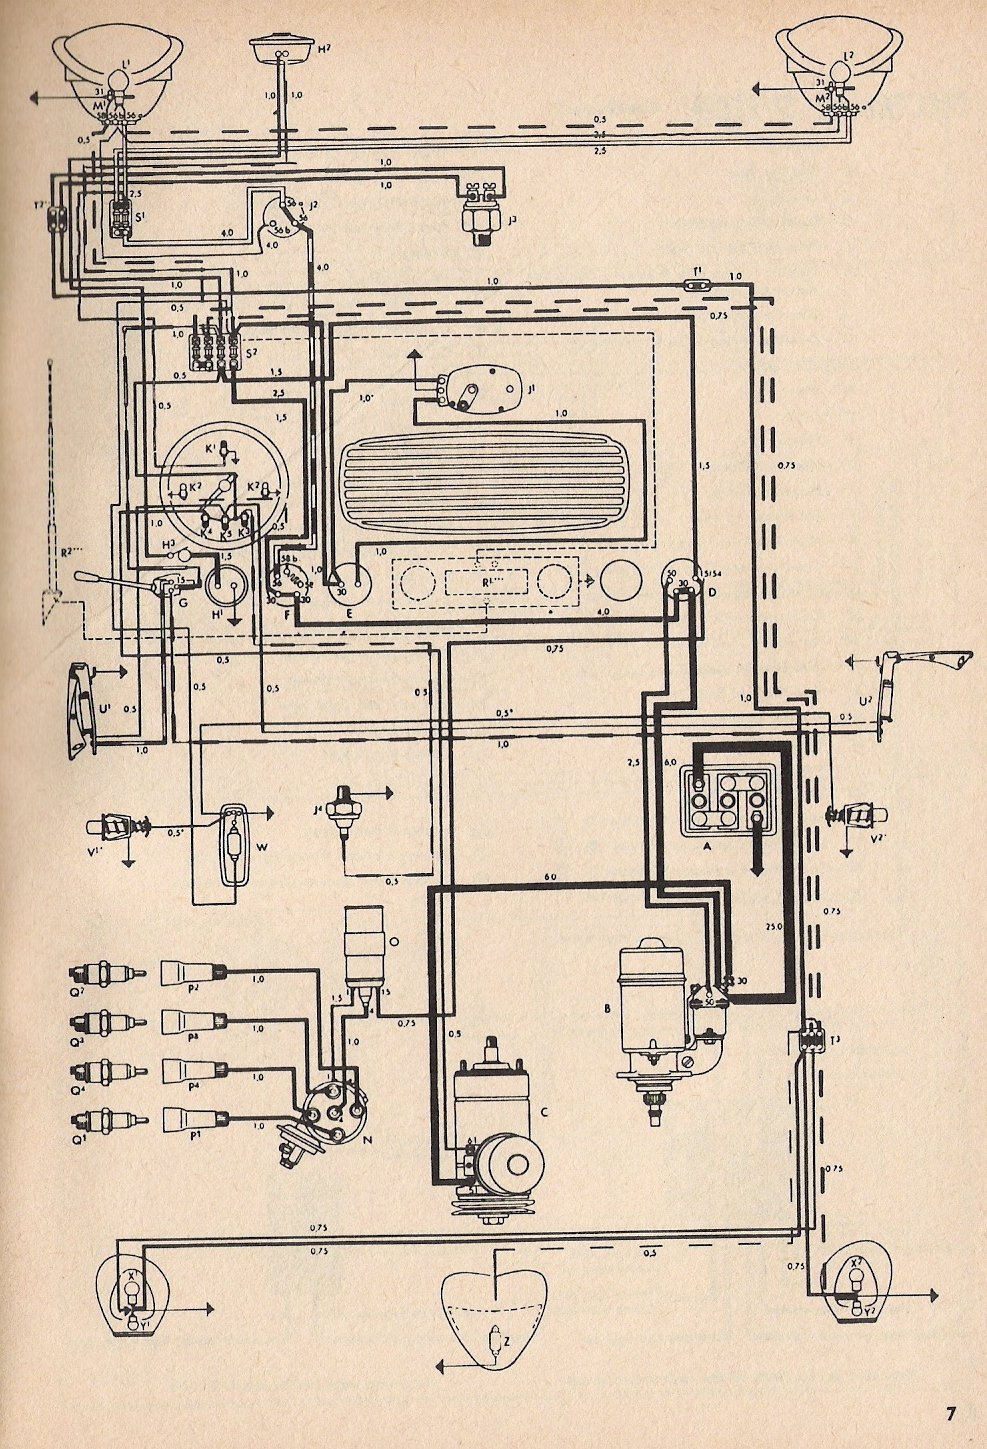 Type 1 Wiring Diagrams 1968 Nova Dash Diagram